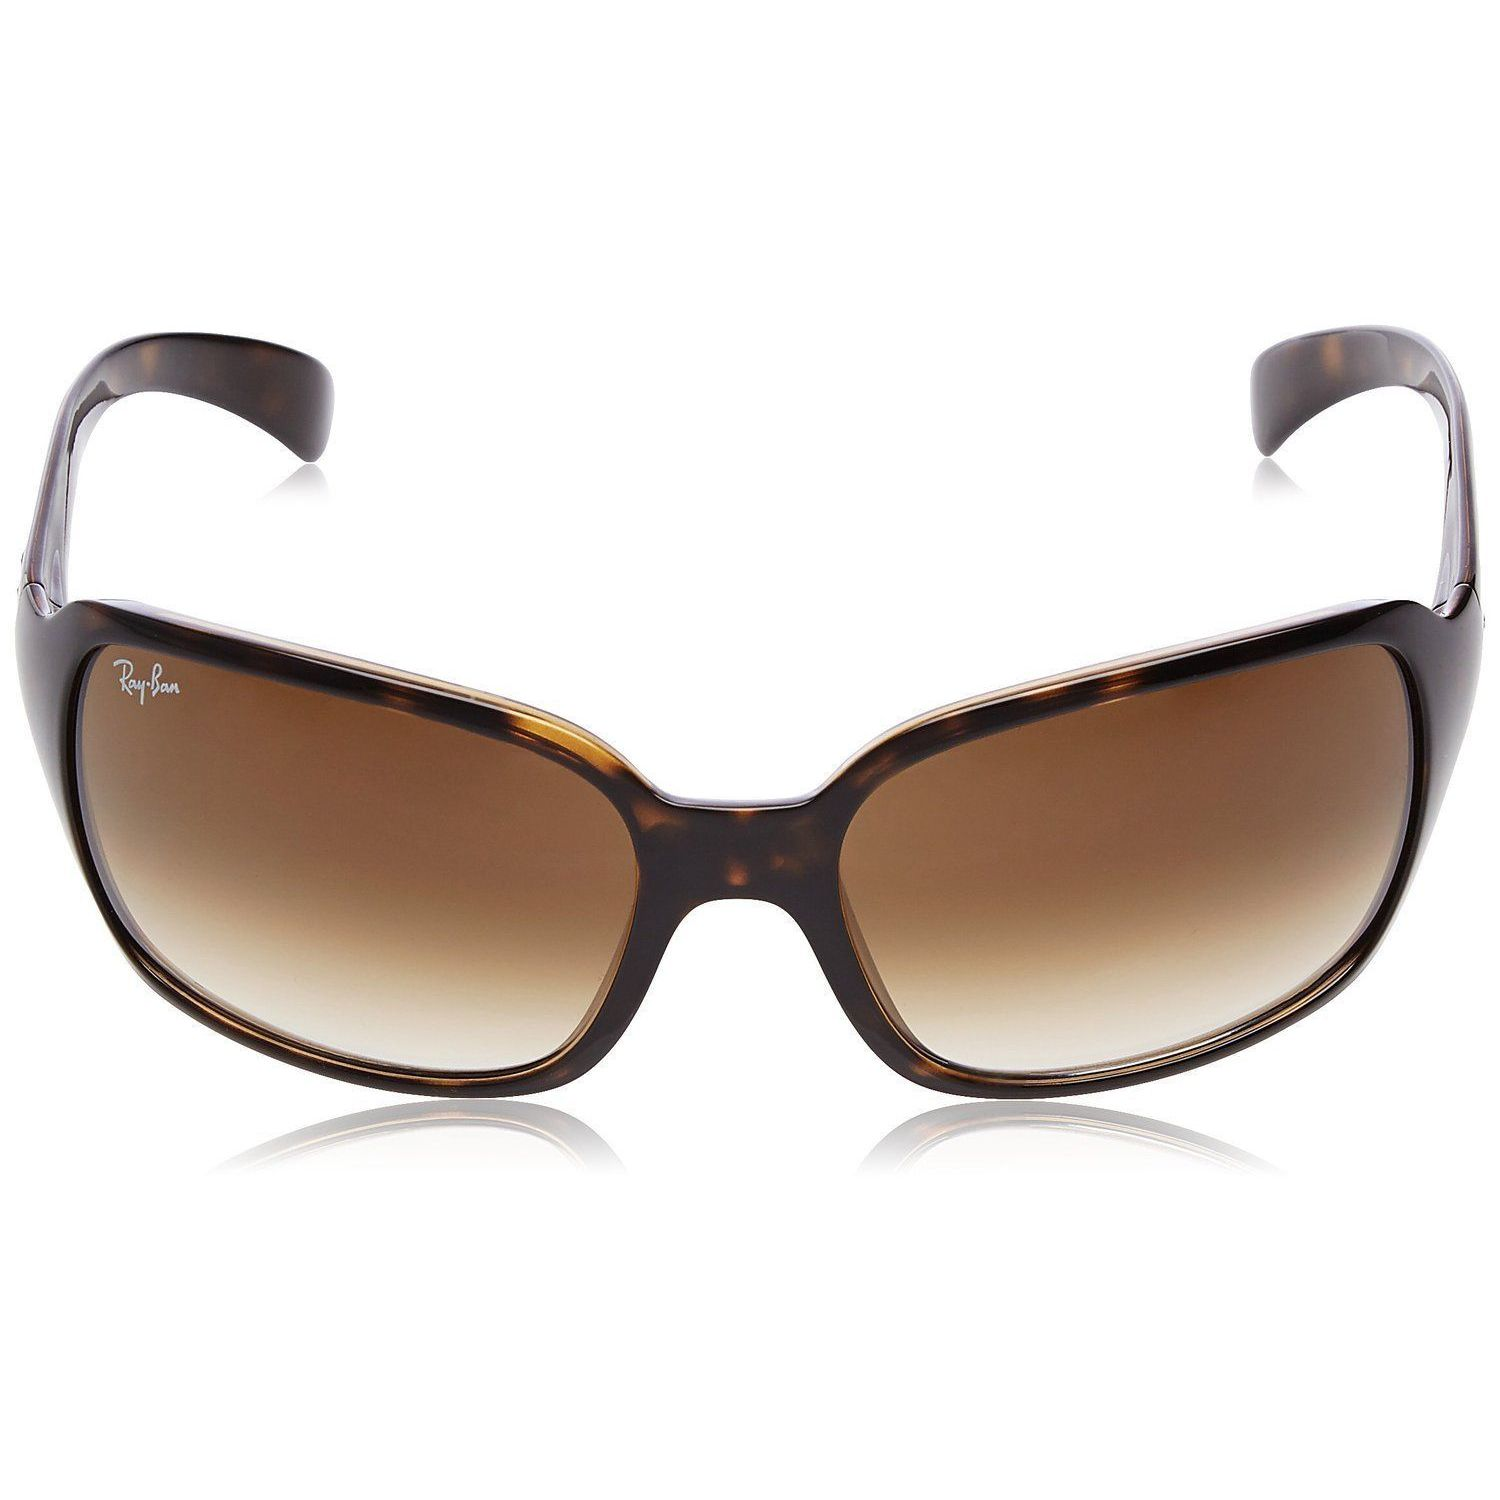 9a0a8898944 Shop Ray-Ban RB4068 710 51 Tortoise Frame Light Brown Gradient 60mm Lens  Sunglasses - Free Shipping Today - Overstock - 14329395